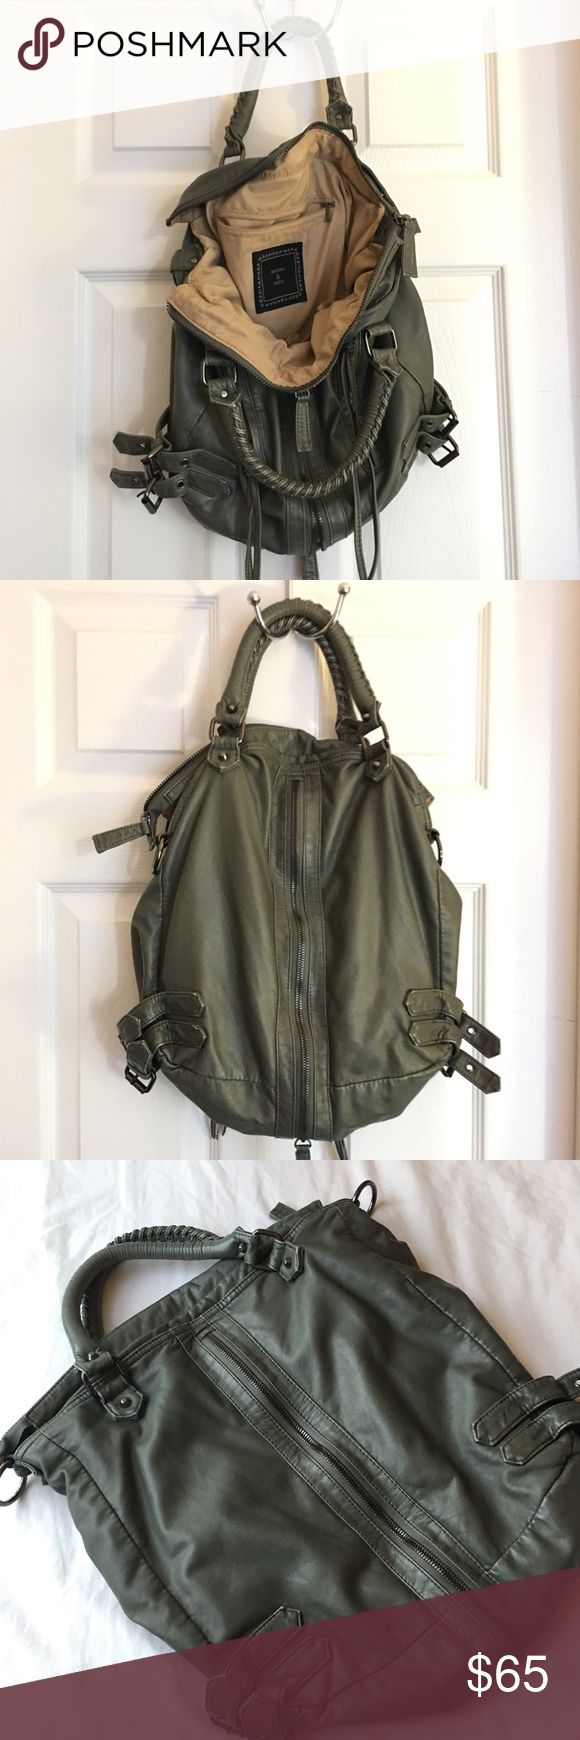 Urban Outfitters Deena & Ozzy Leather Bag Urban Outfitters Deena & Ozzy Leather Bag in Grayish Green. Great bag with fun zipper all the way around lengthwise. Several interior pockets. Zippered outer pockets. Interior has some staining in the very bottom (pen marks mostly). Deena & Ozzy Bags